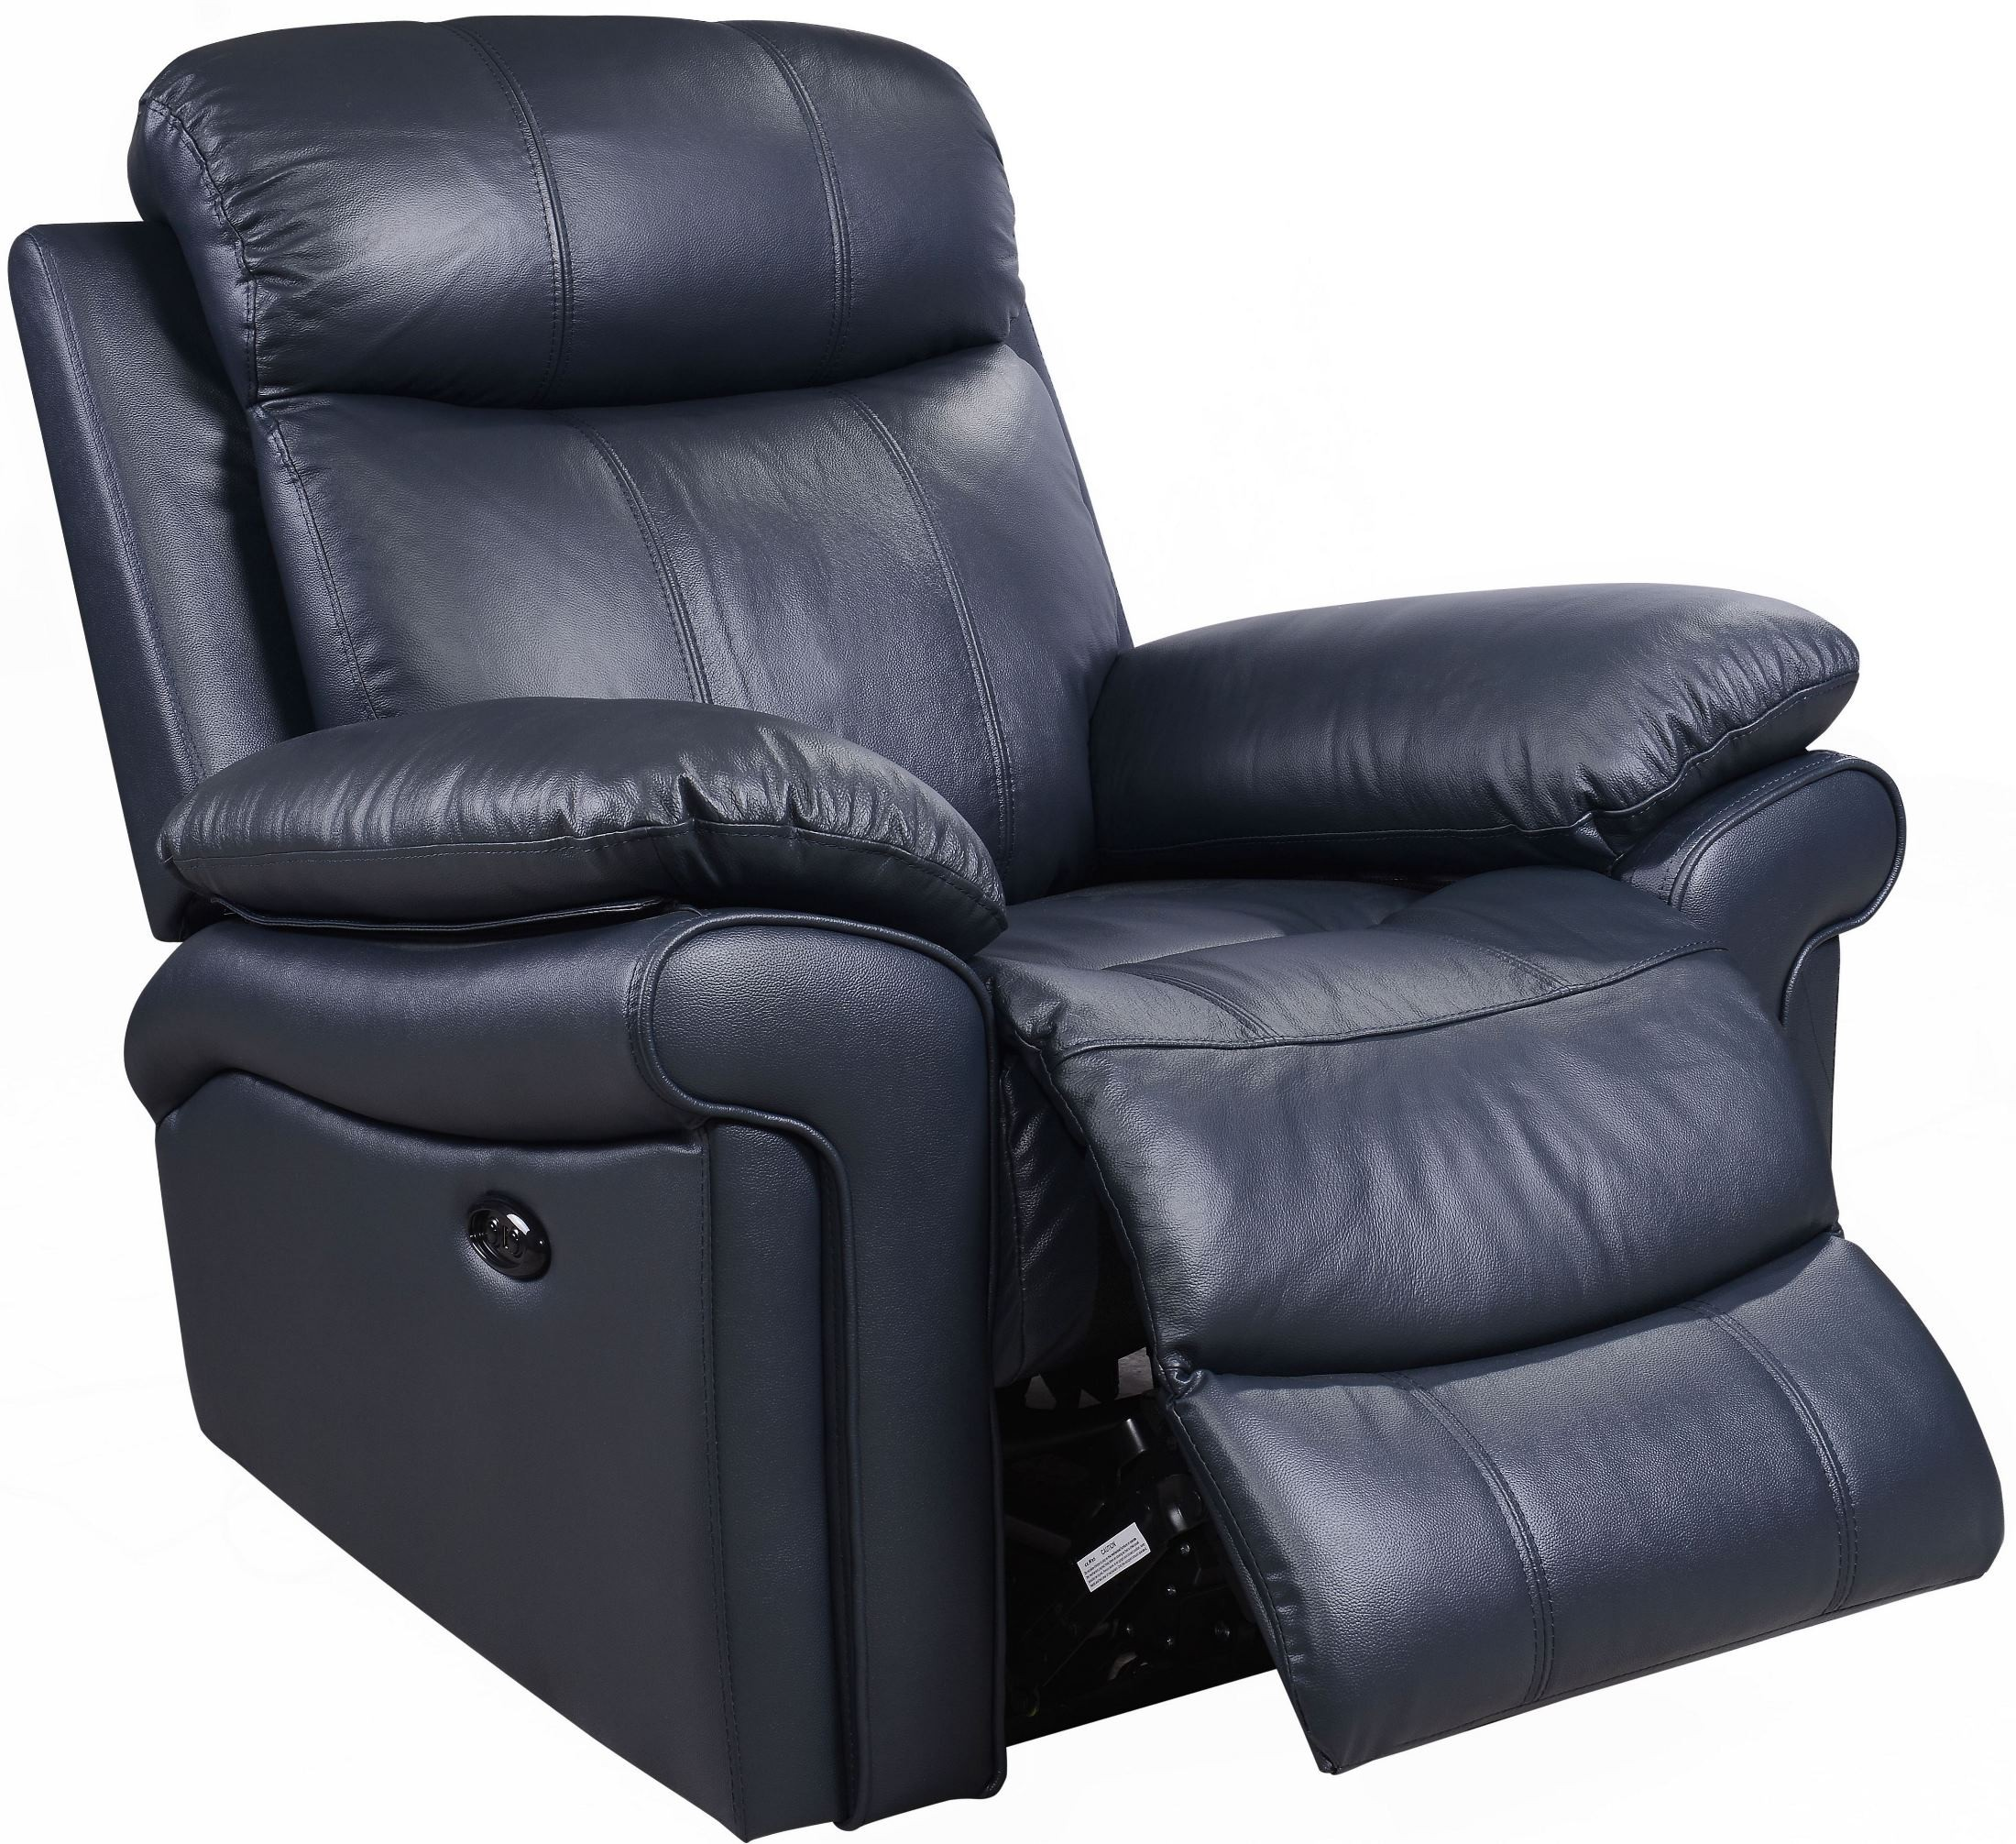 Leather Reclining Chair Shae Joplin Blue Leather Power Reclining Chair From